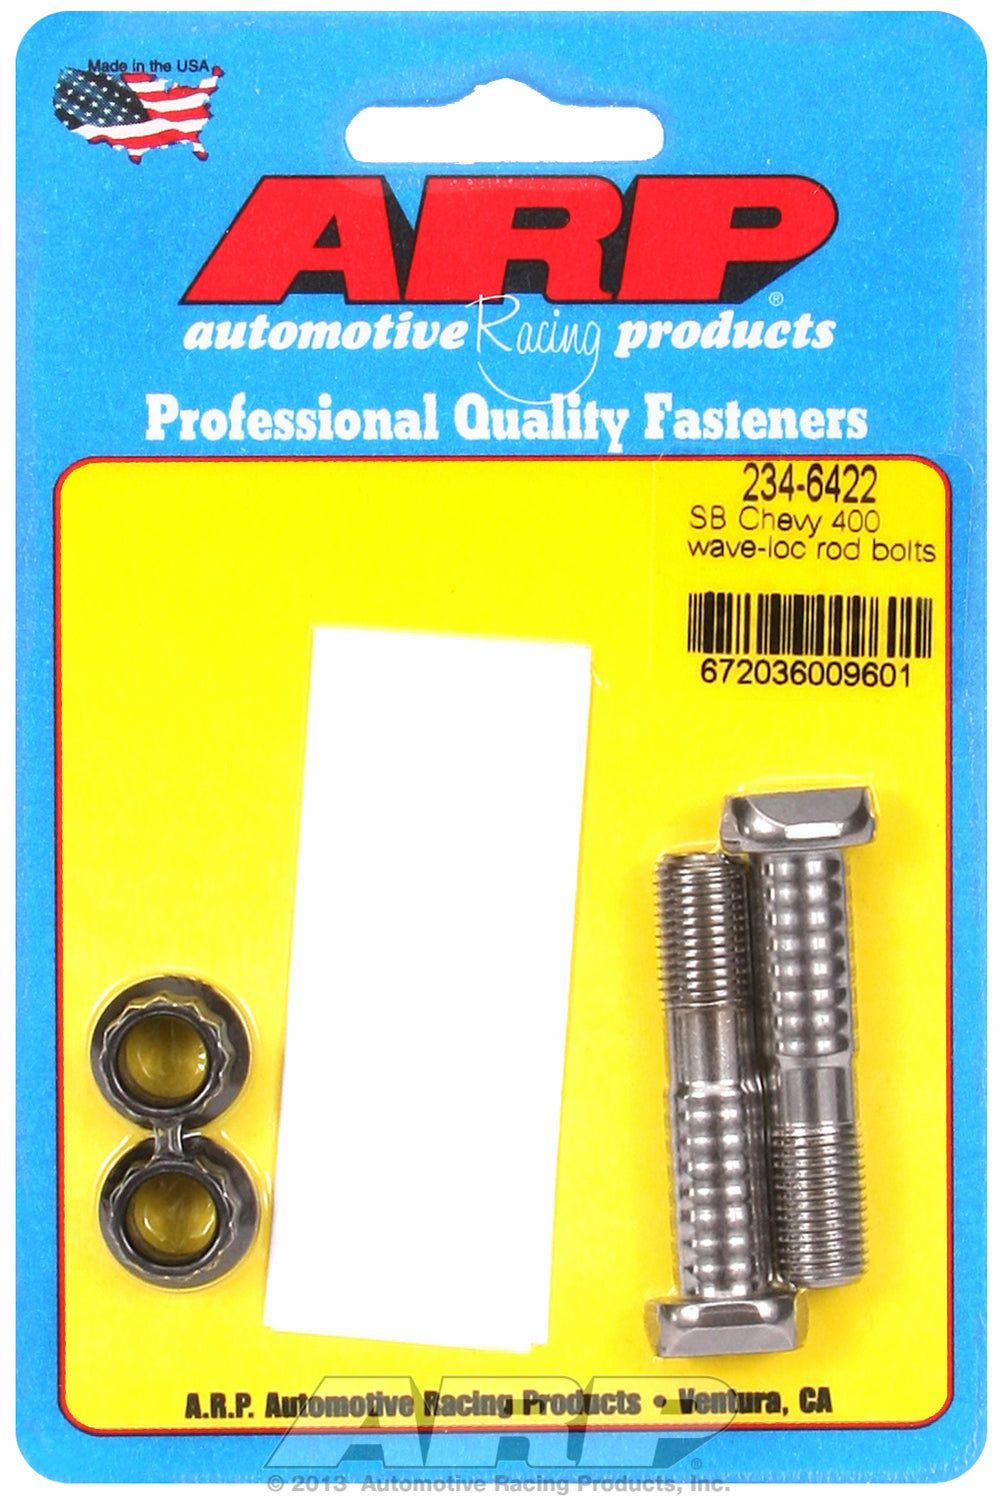 Pro Wave ARP2000 2-pc Rod Bolt Kit for Chevrolet 400 cid